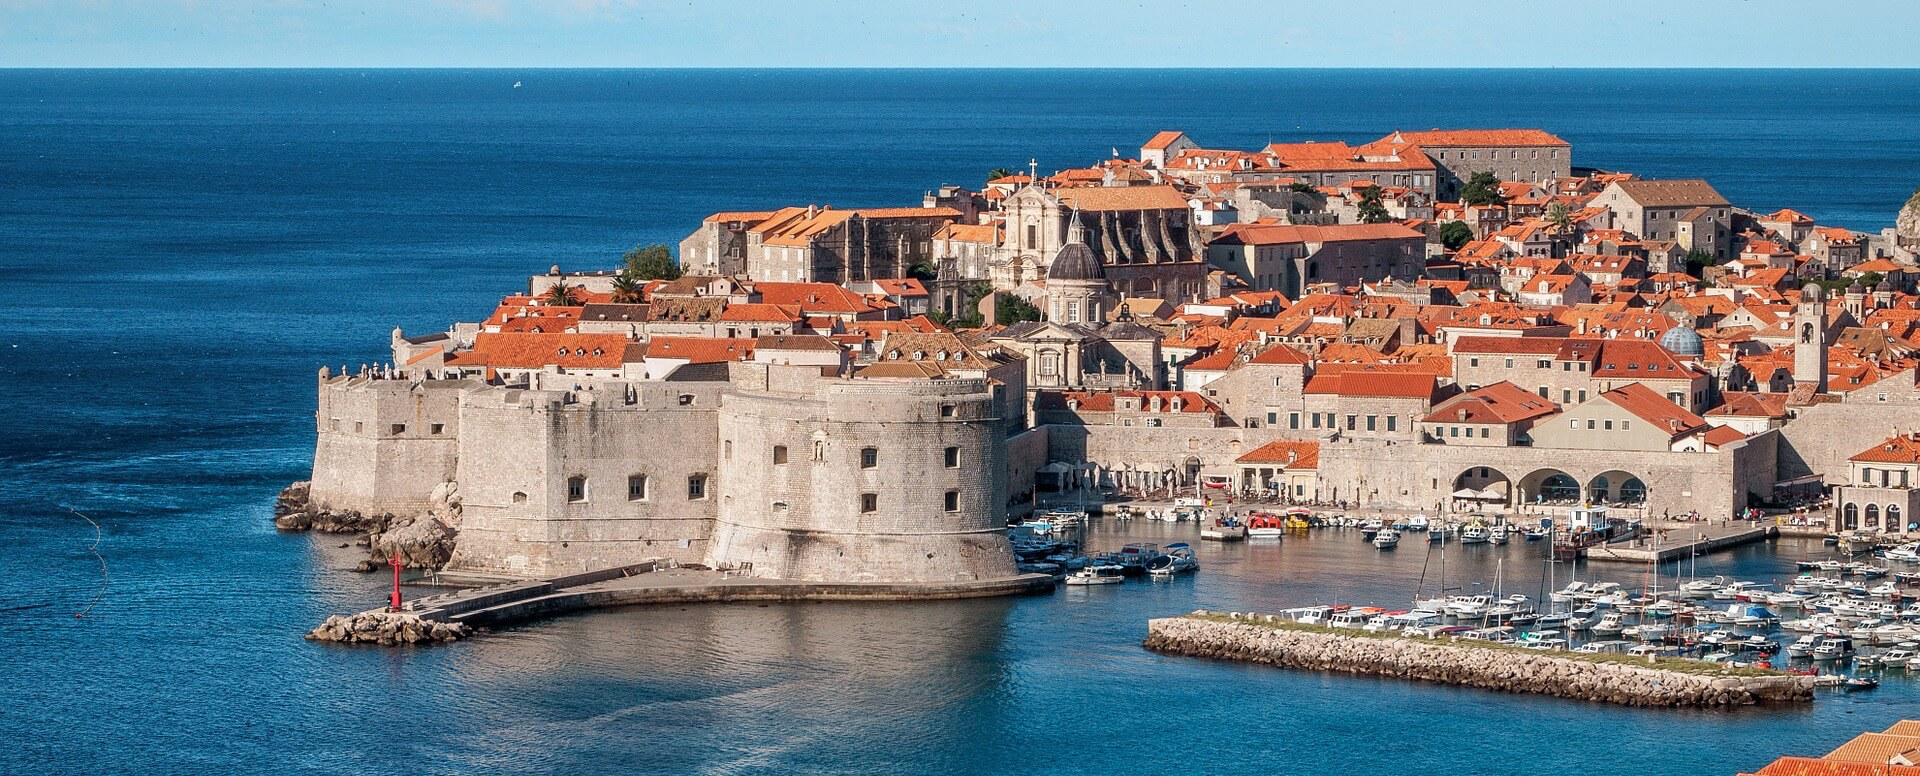 10 choses incontournables à faire en Croatie - Croatie